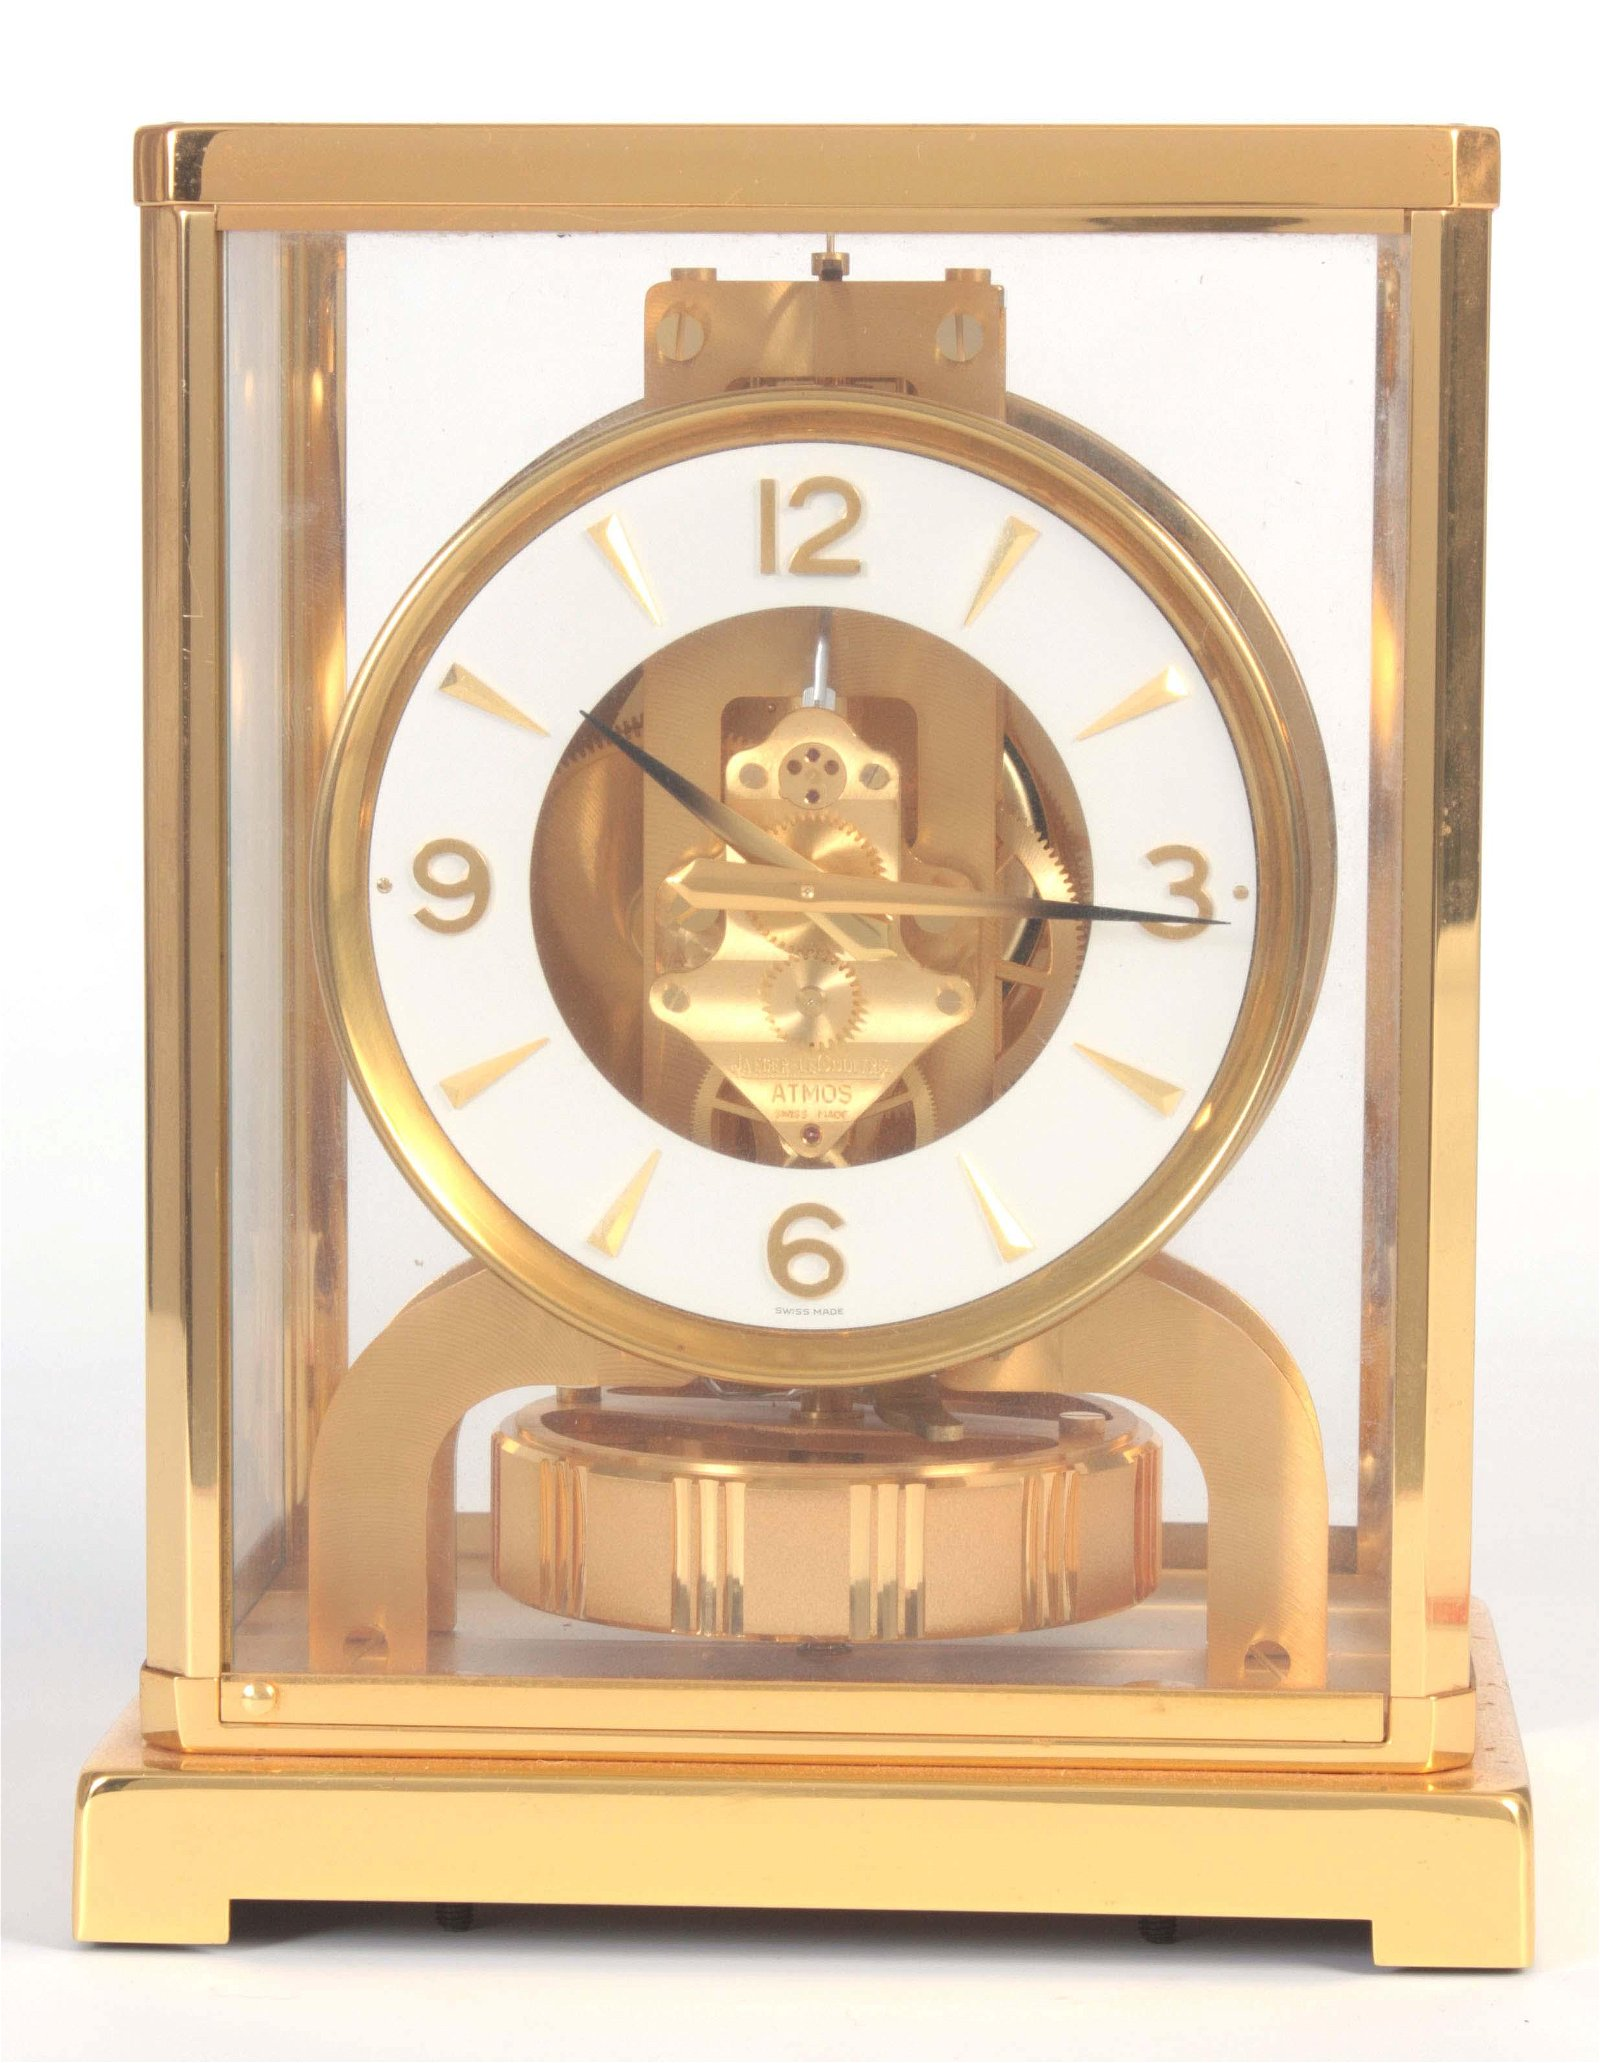 A JAEGER-LECOULTRE ATMOS CLOCK with a gilt brass f